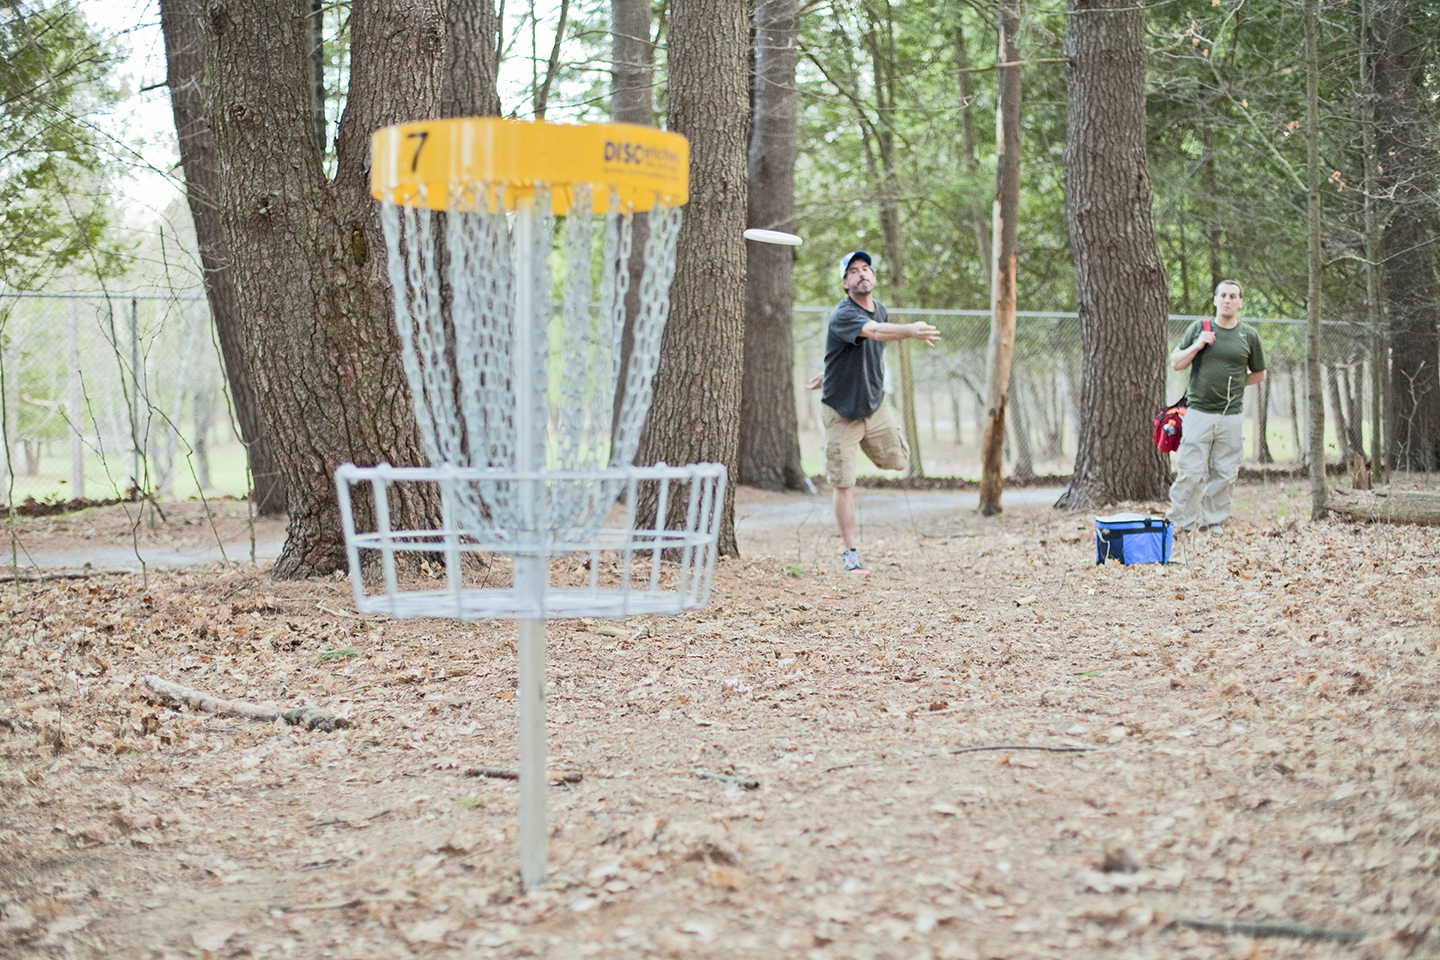 Tim DeFranco looks on as Jamin Totino attempts to sink a lengthy putt on Hole 7 at Saratoga Spa State Park's disc golf course.     Anthony Aquino Photography